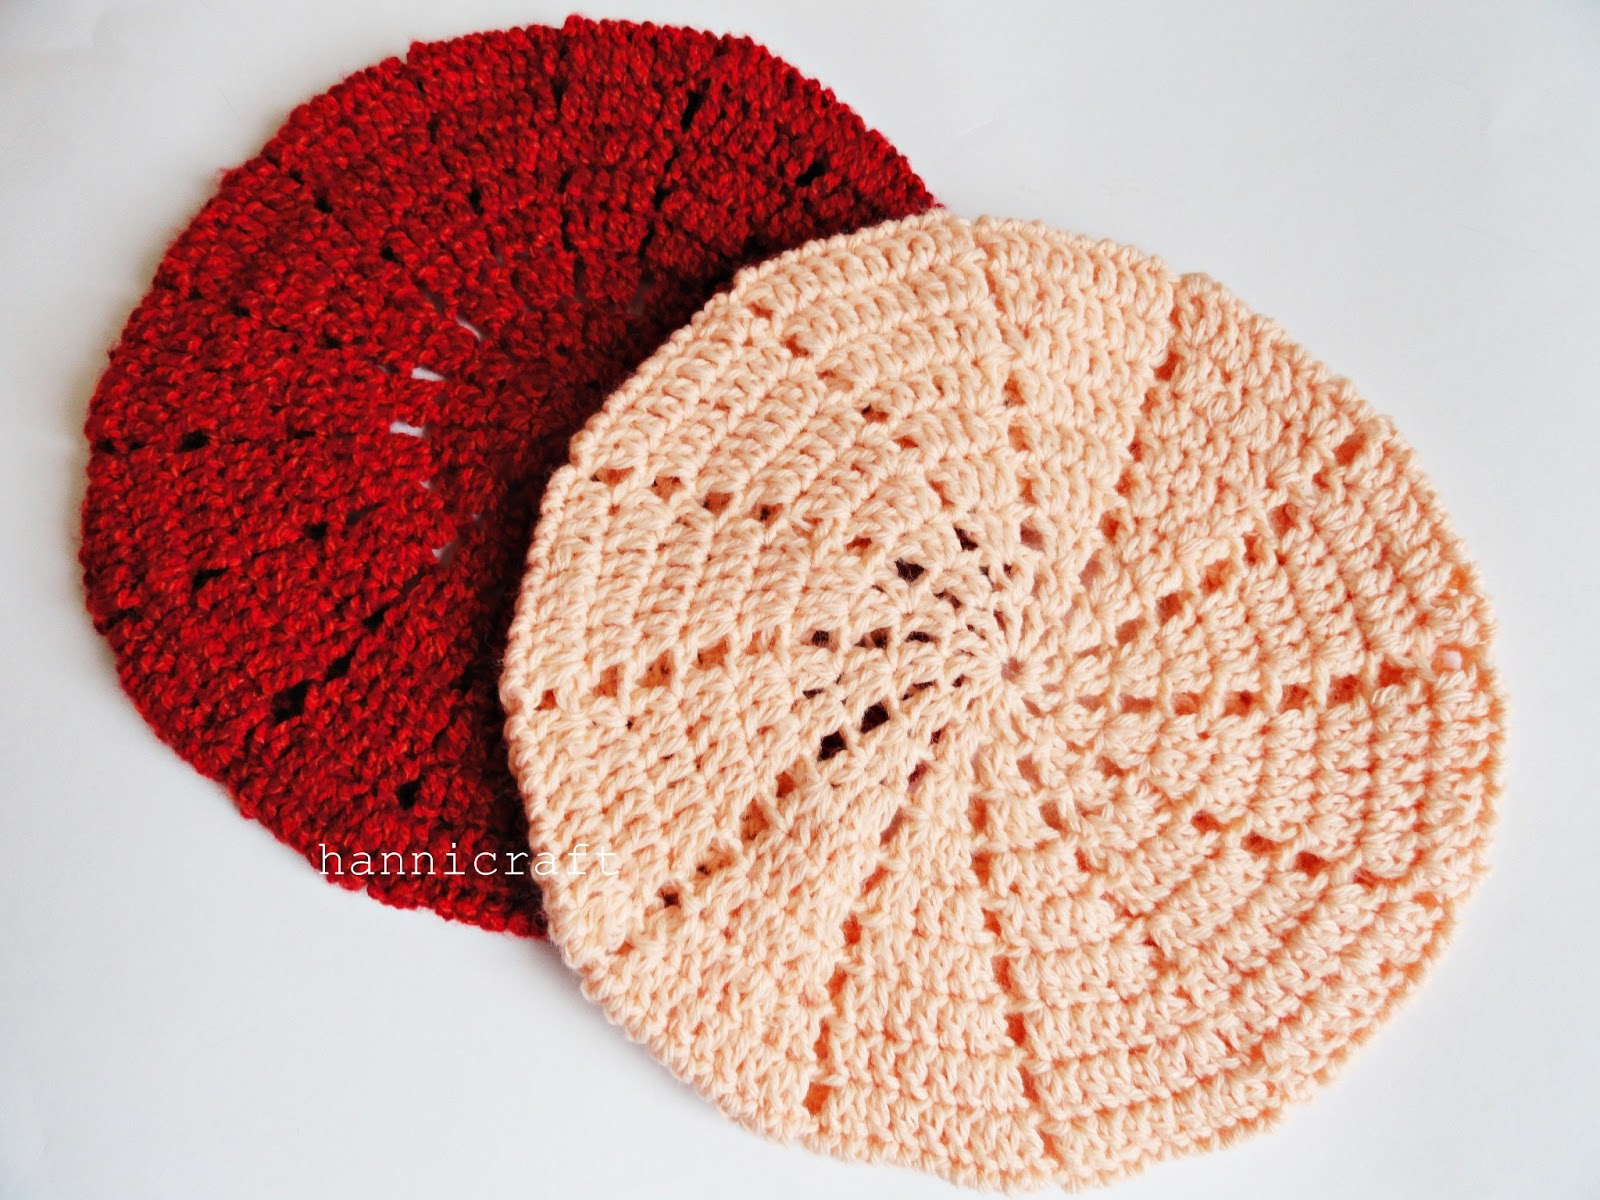 Beret Knit Pattern Free Easy : hannicraft: Simple beret crochet pattern